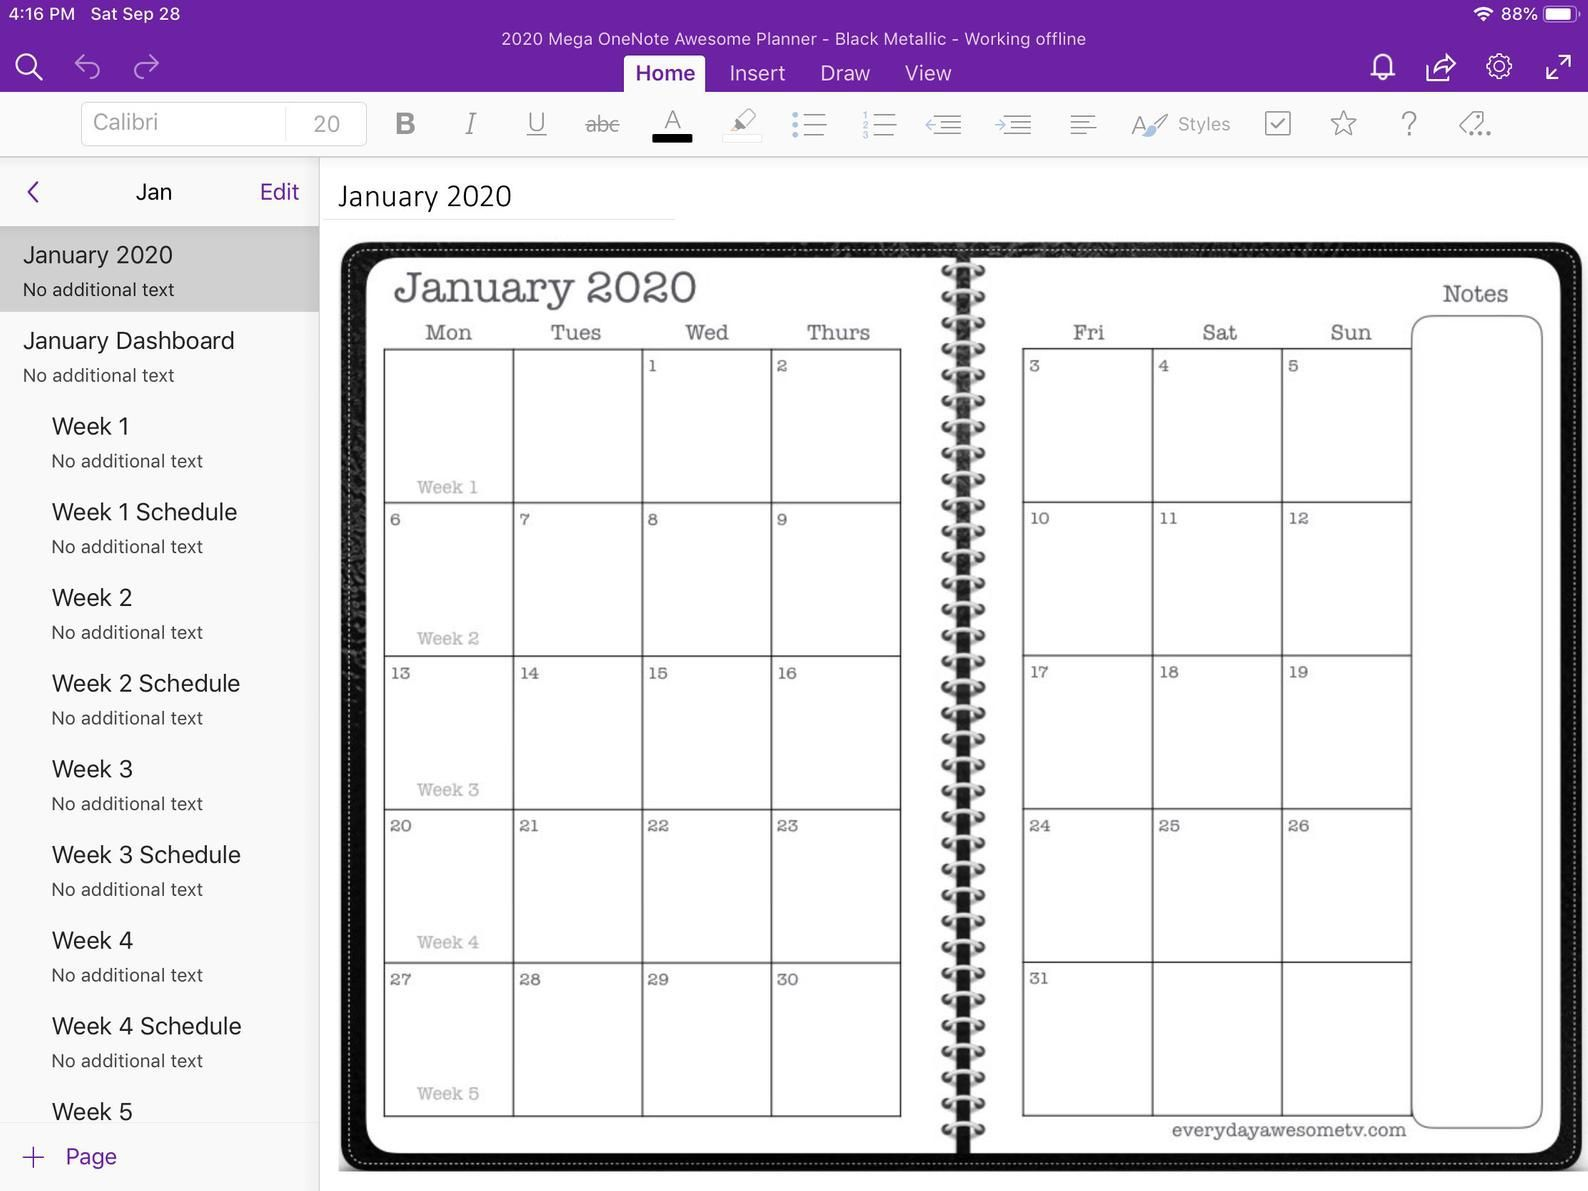 005 Exceptional Onenote Project Management Template Free Sample  DownloadFull